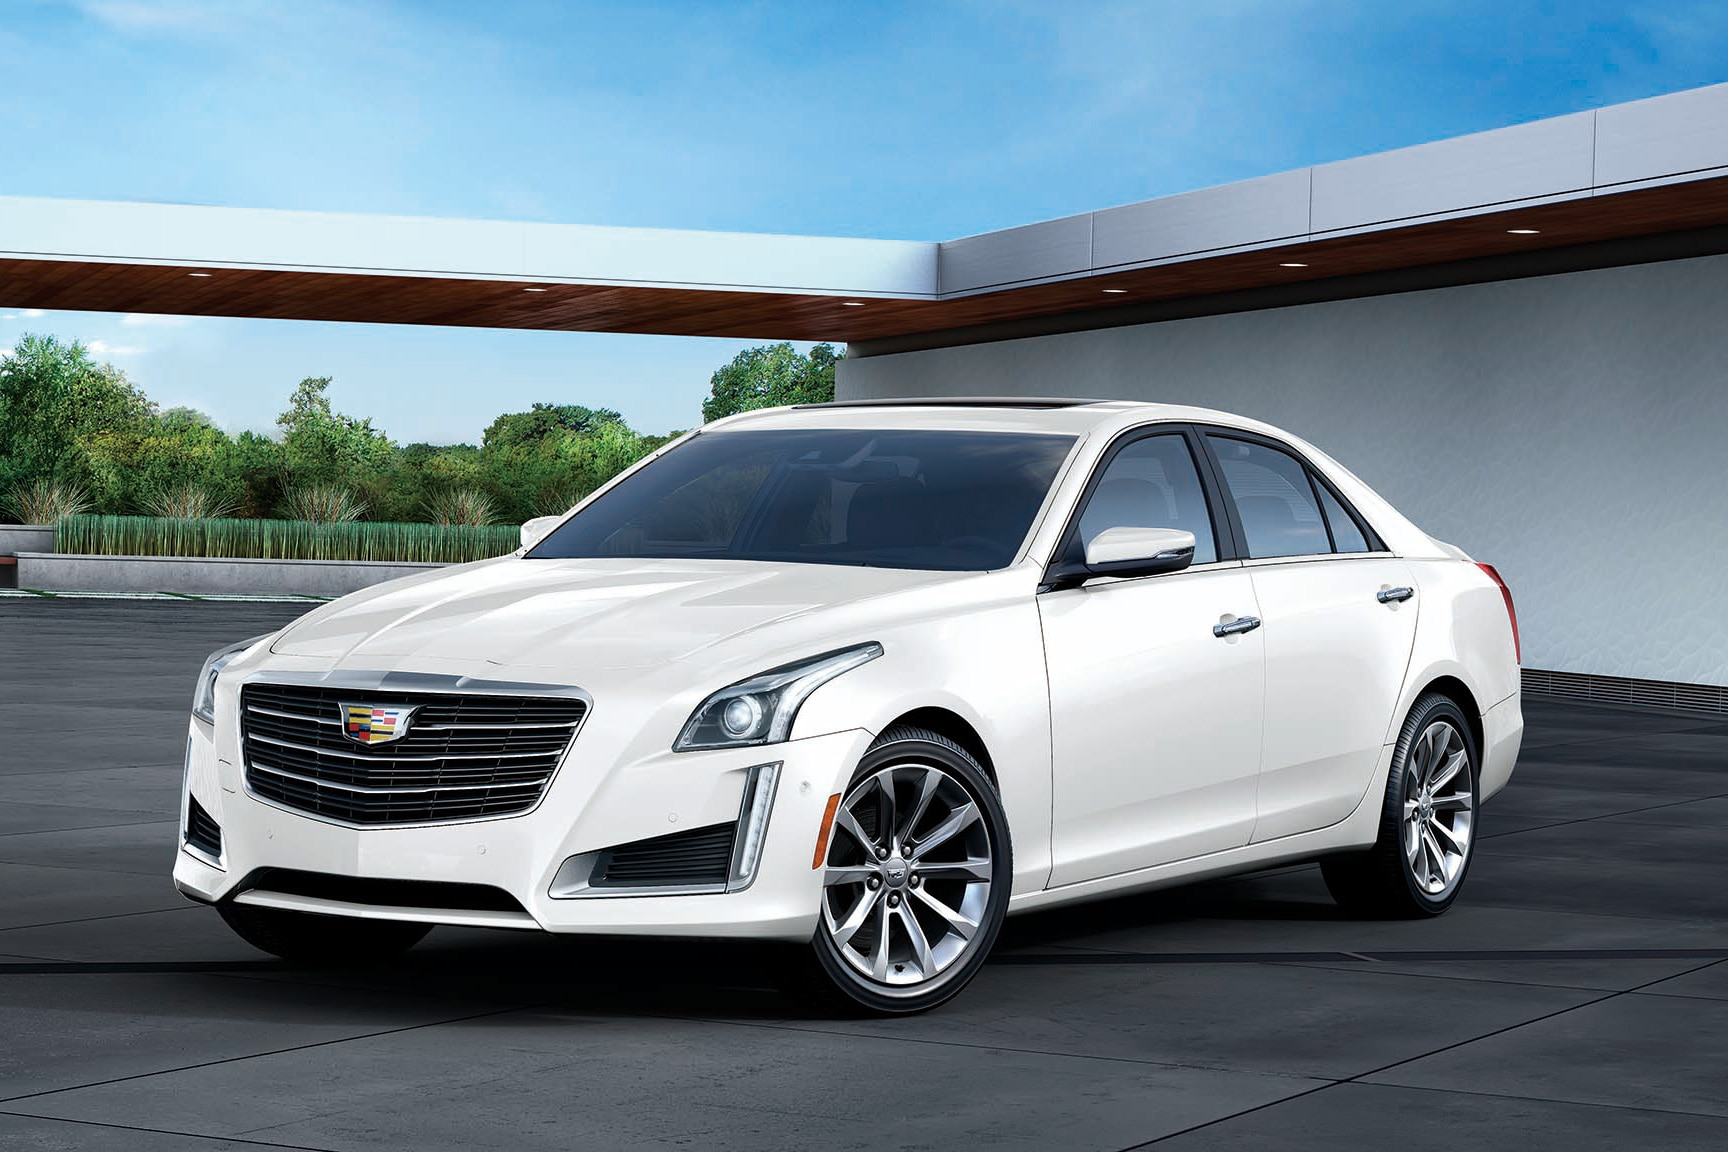 2017 Cadillac CTS White Edition Front Three Quarter